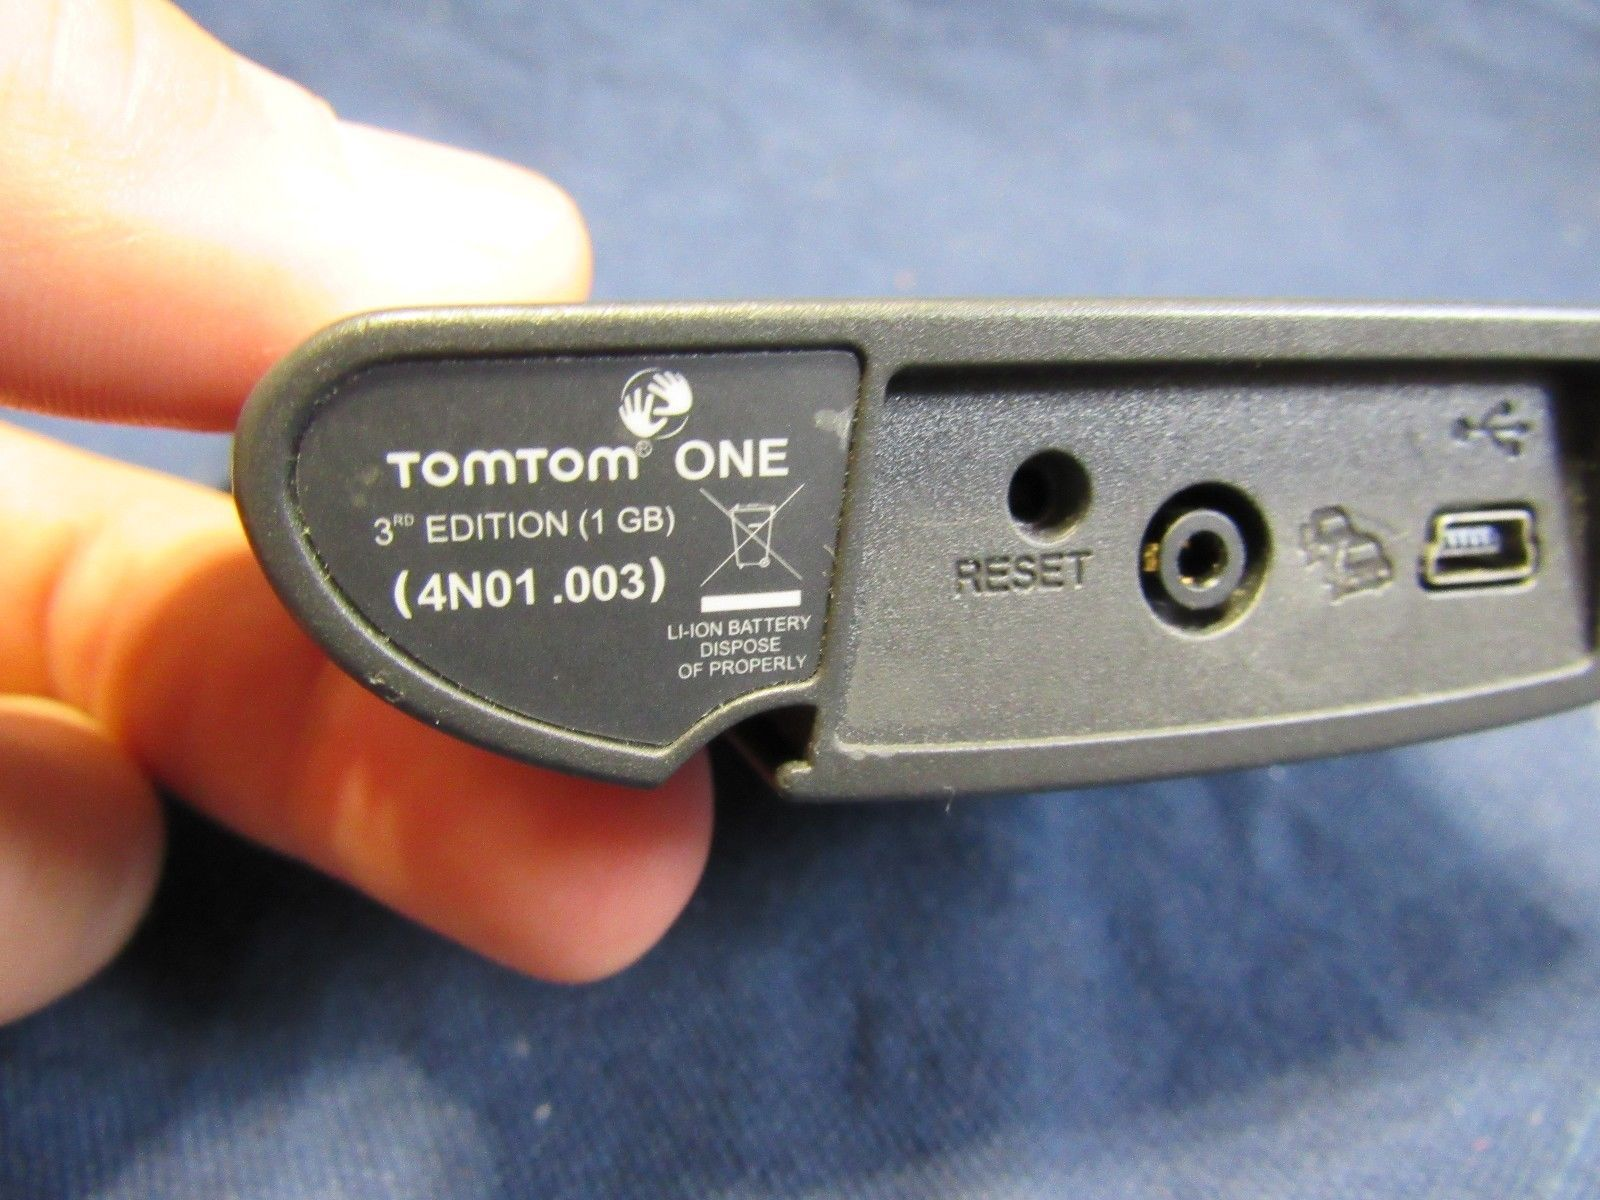 TomTom ONE 3rd Edition GPS unit 1GB   4N01.003